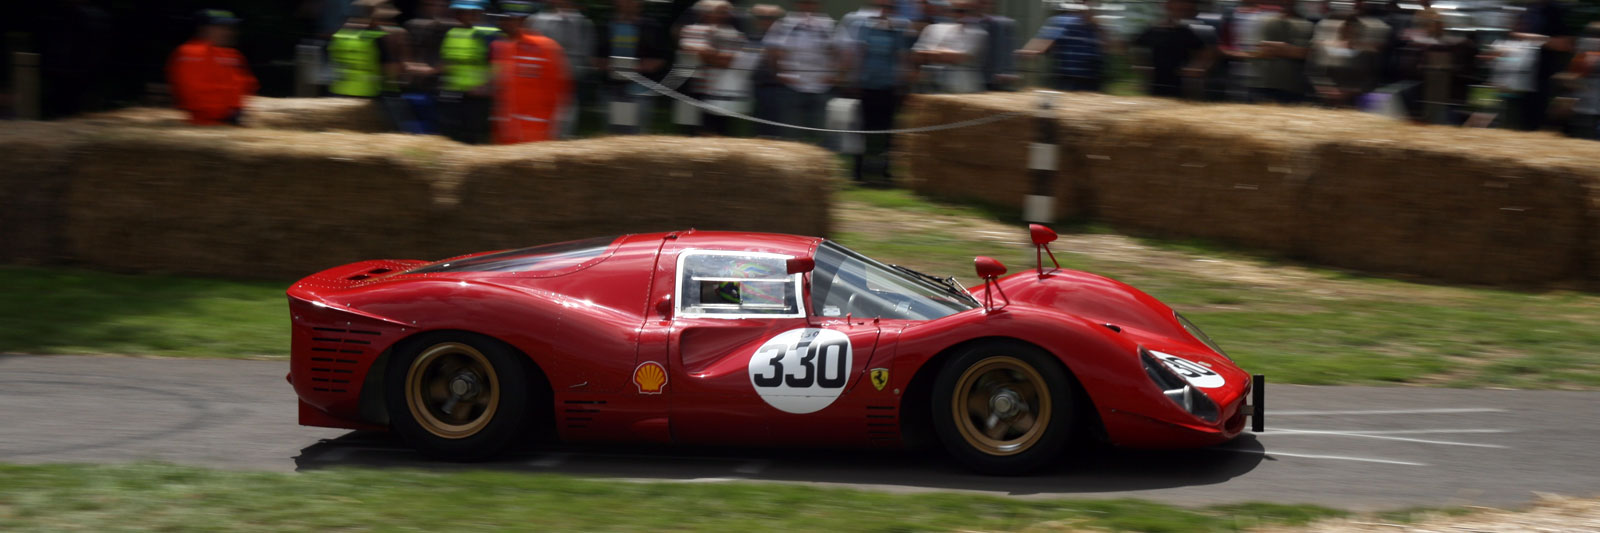 Goodwood Festival of Speed with Grand Prix Tours